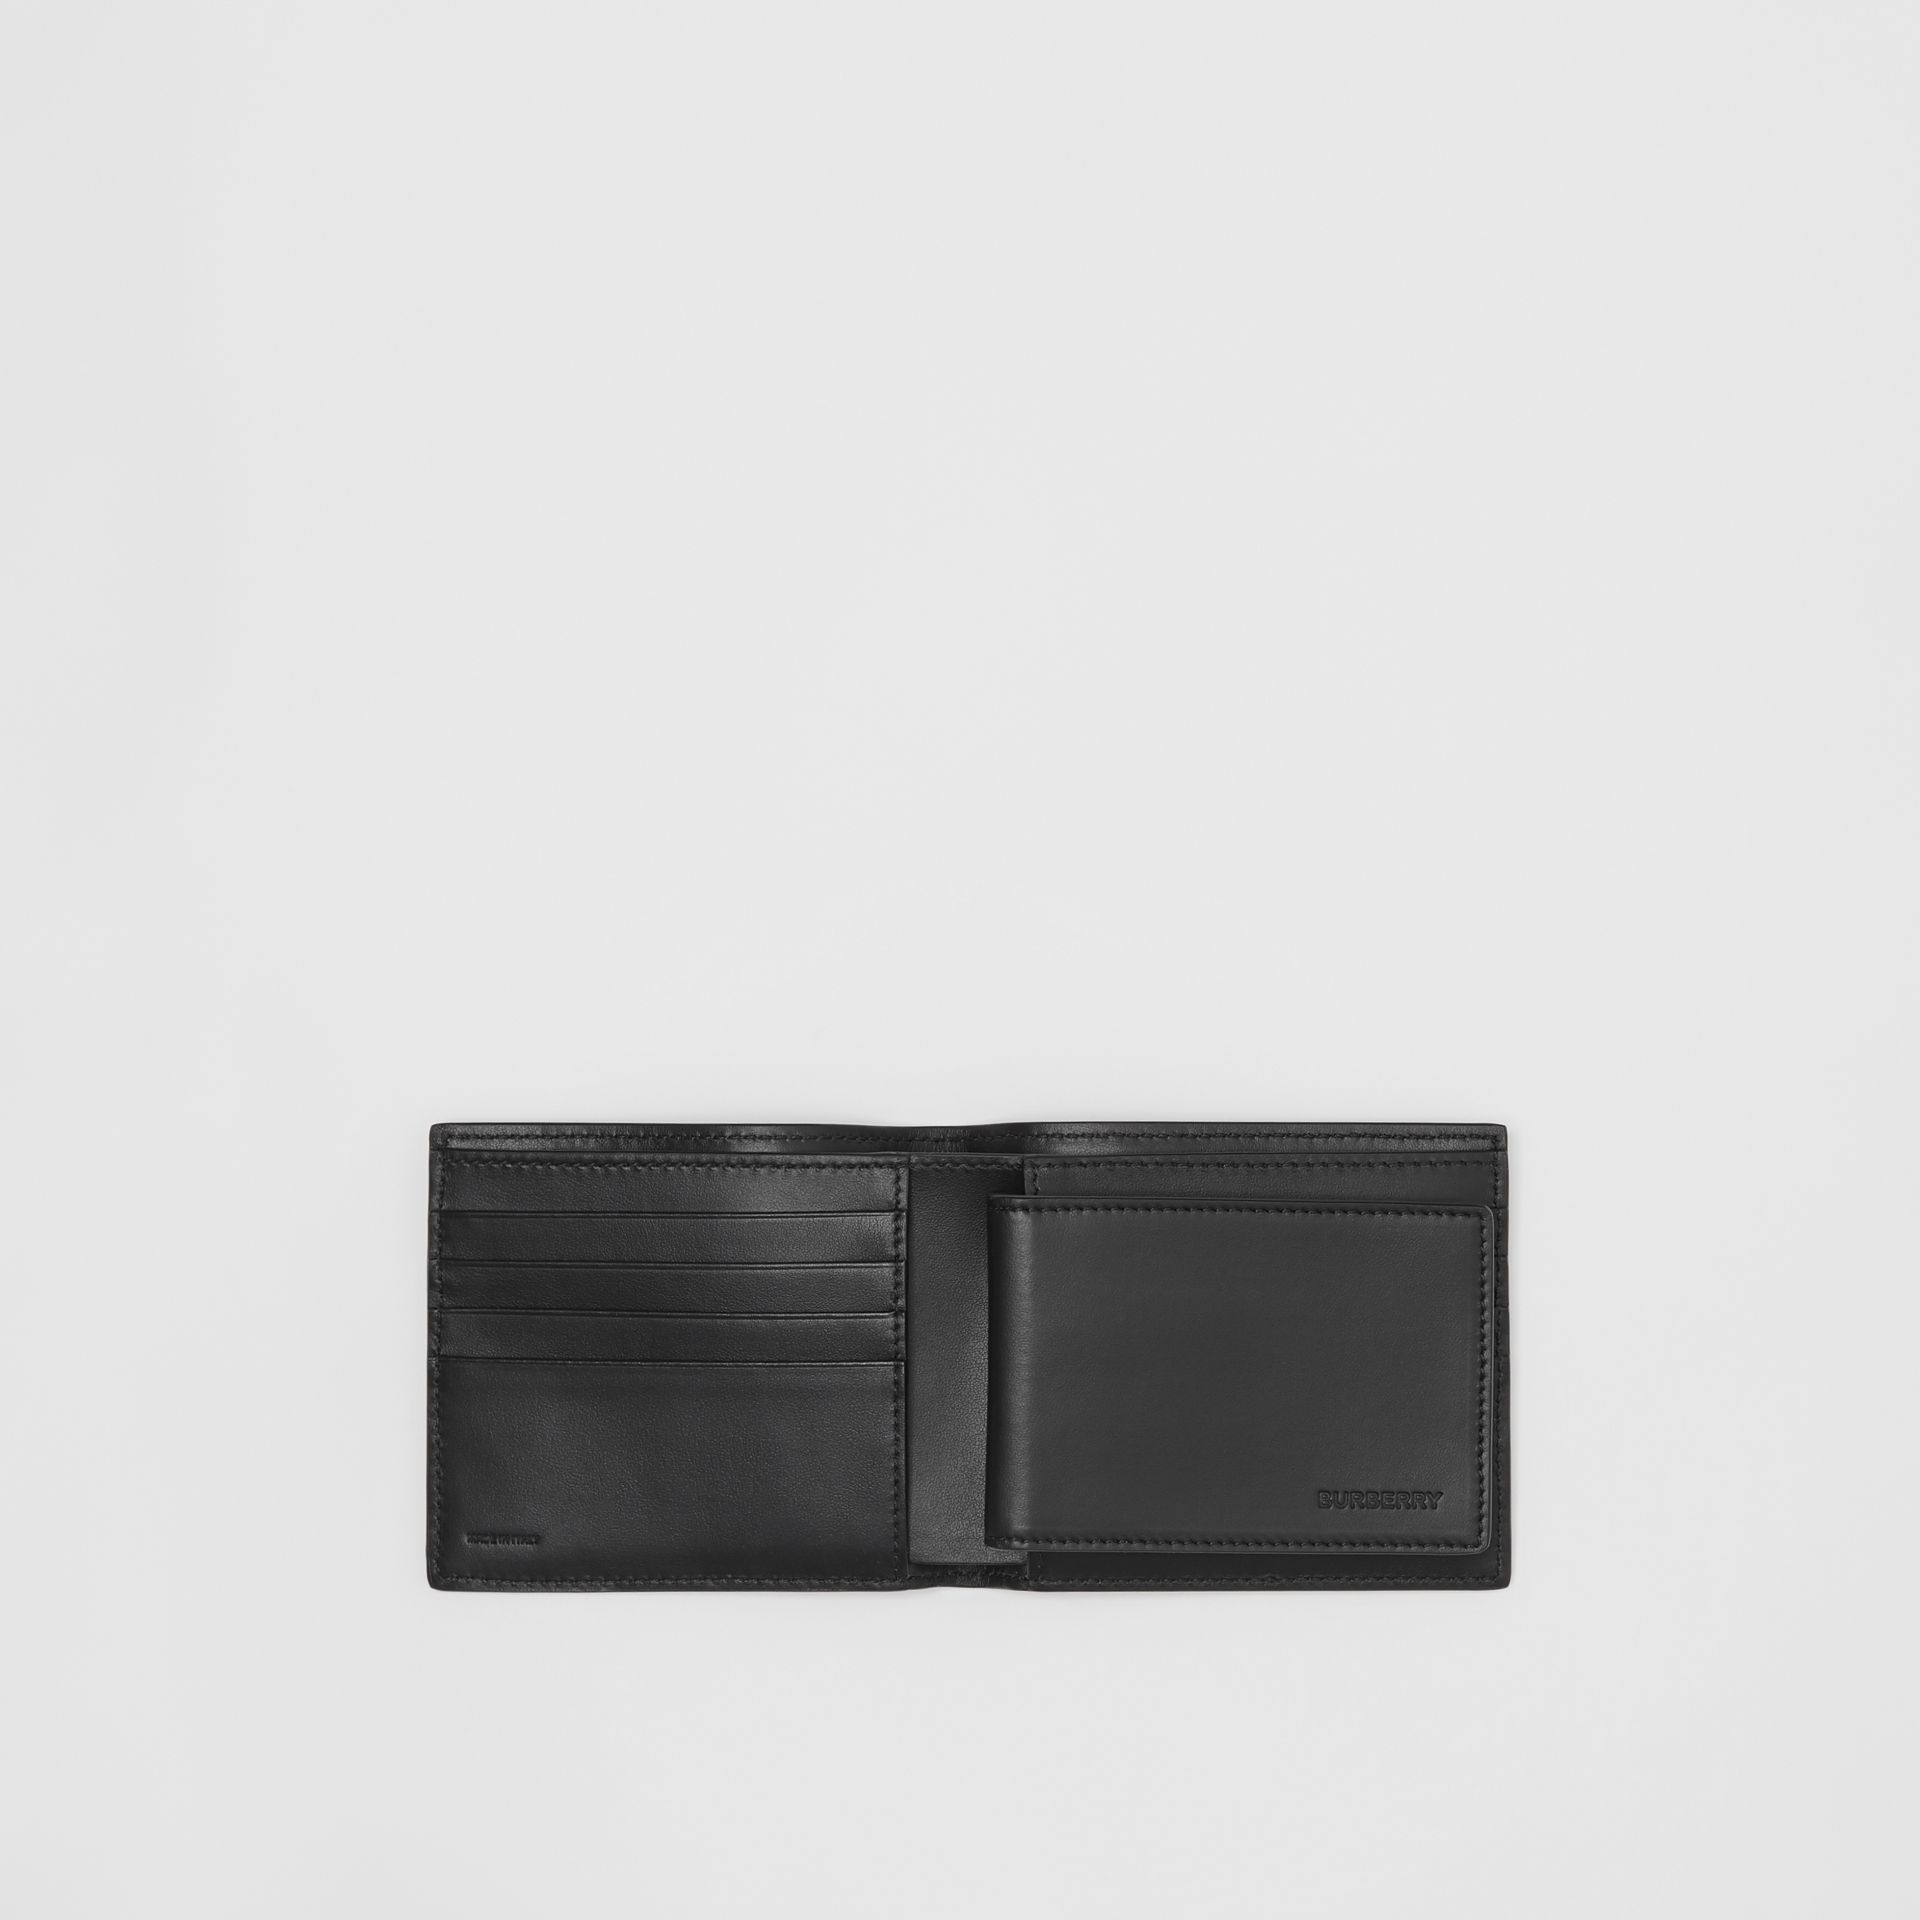 Monogram Leather Bifold Wallet with ID Card Case in Black - Men | Burberry United Kingdom - gallery image 2